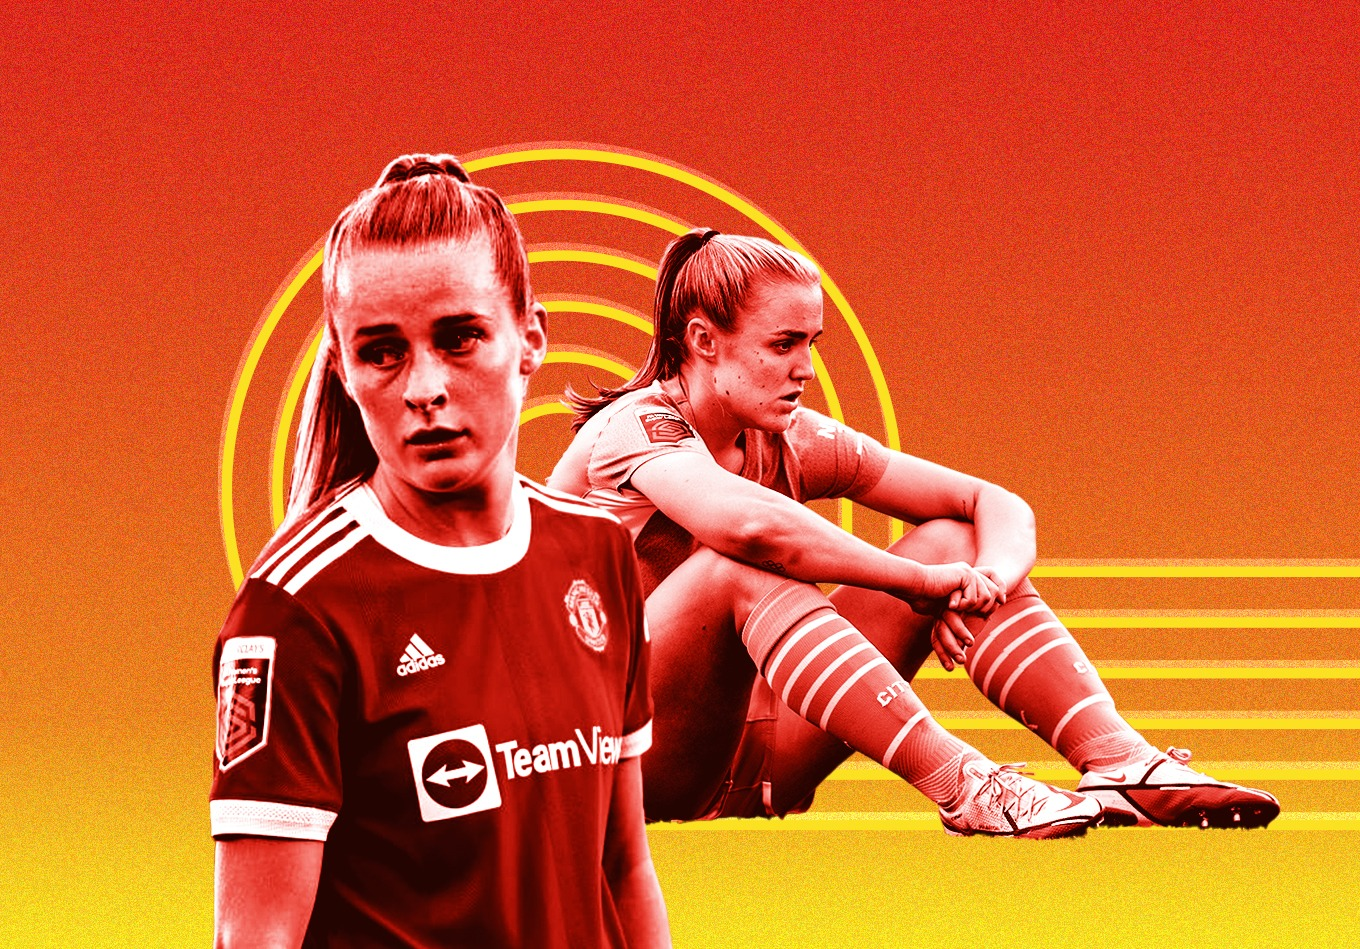 Red vs. Blue: The WSL Manchester Derby Preview